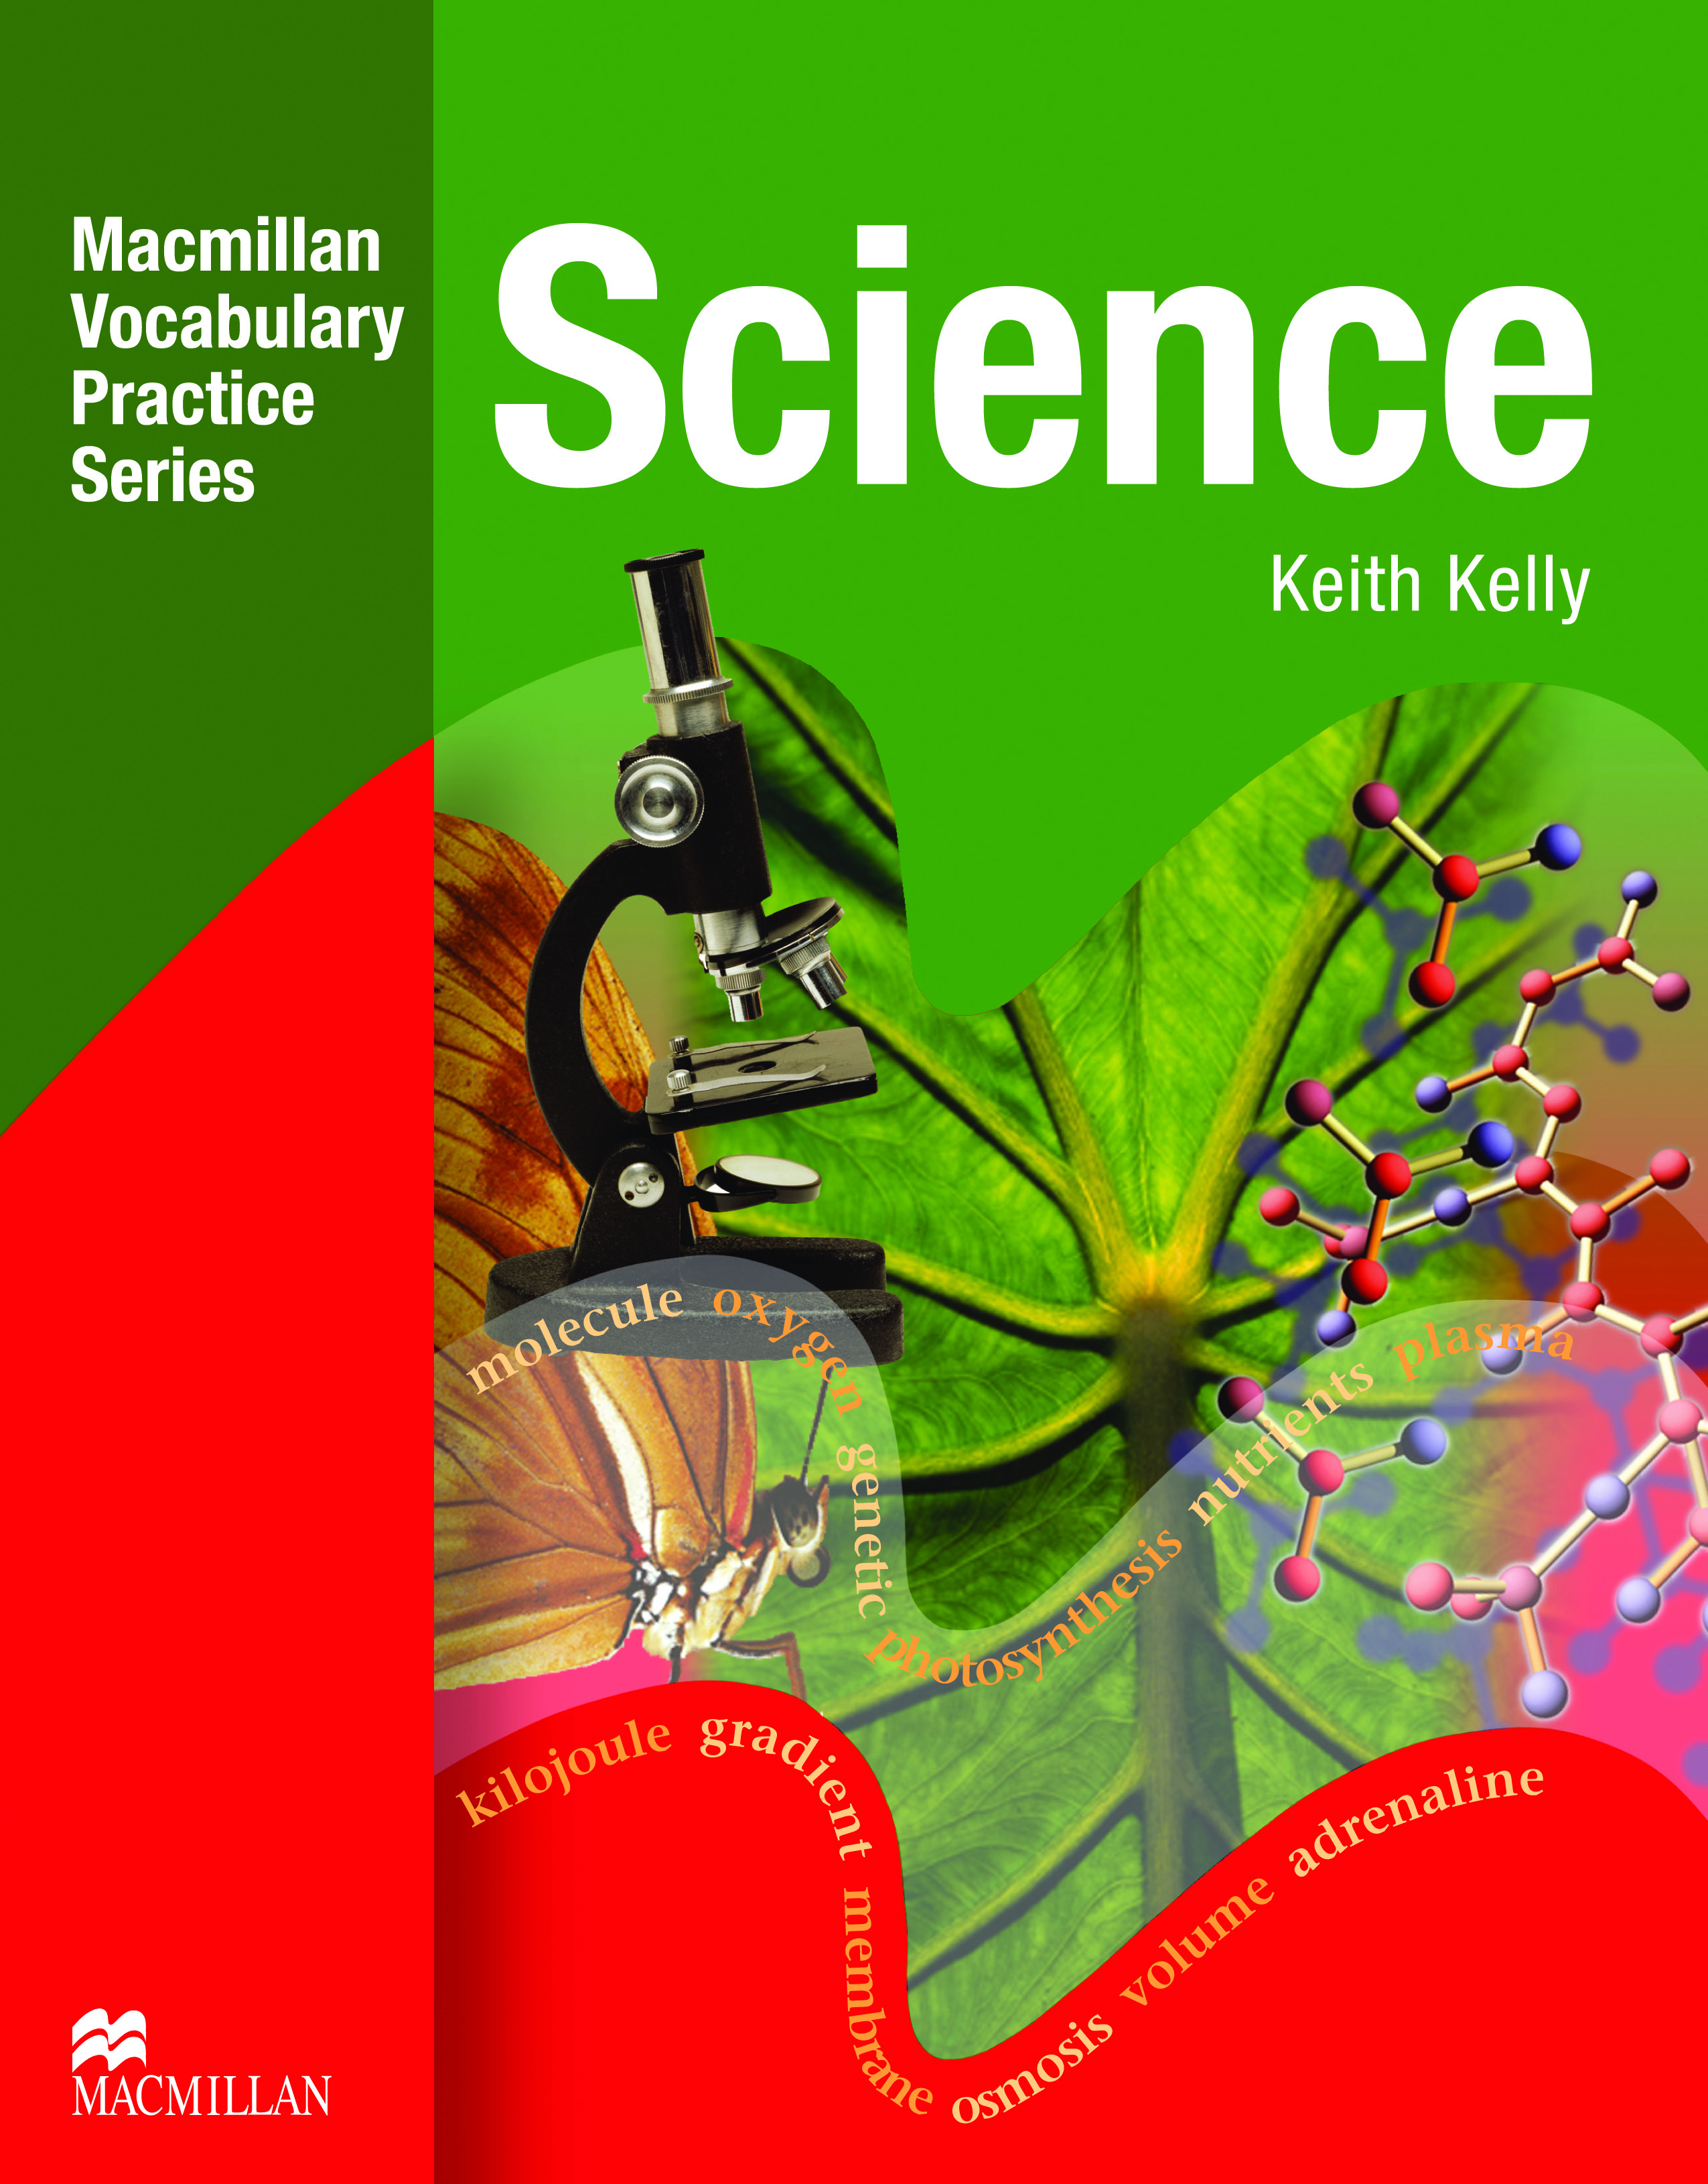 Vocabulary Practice Series Science without Key